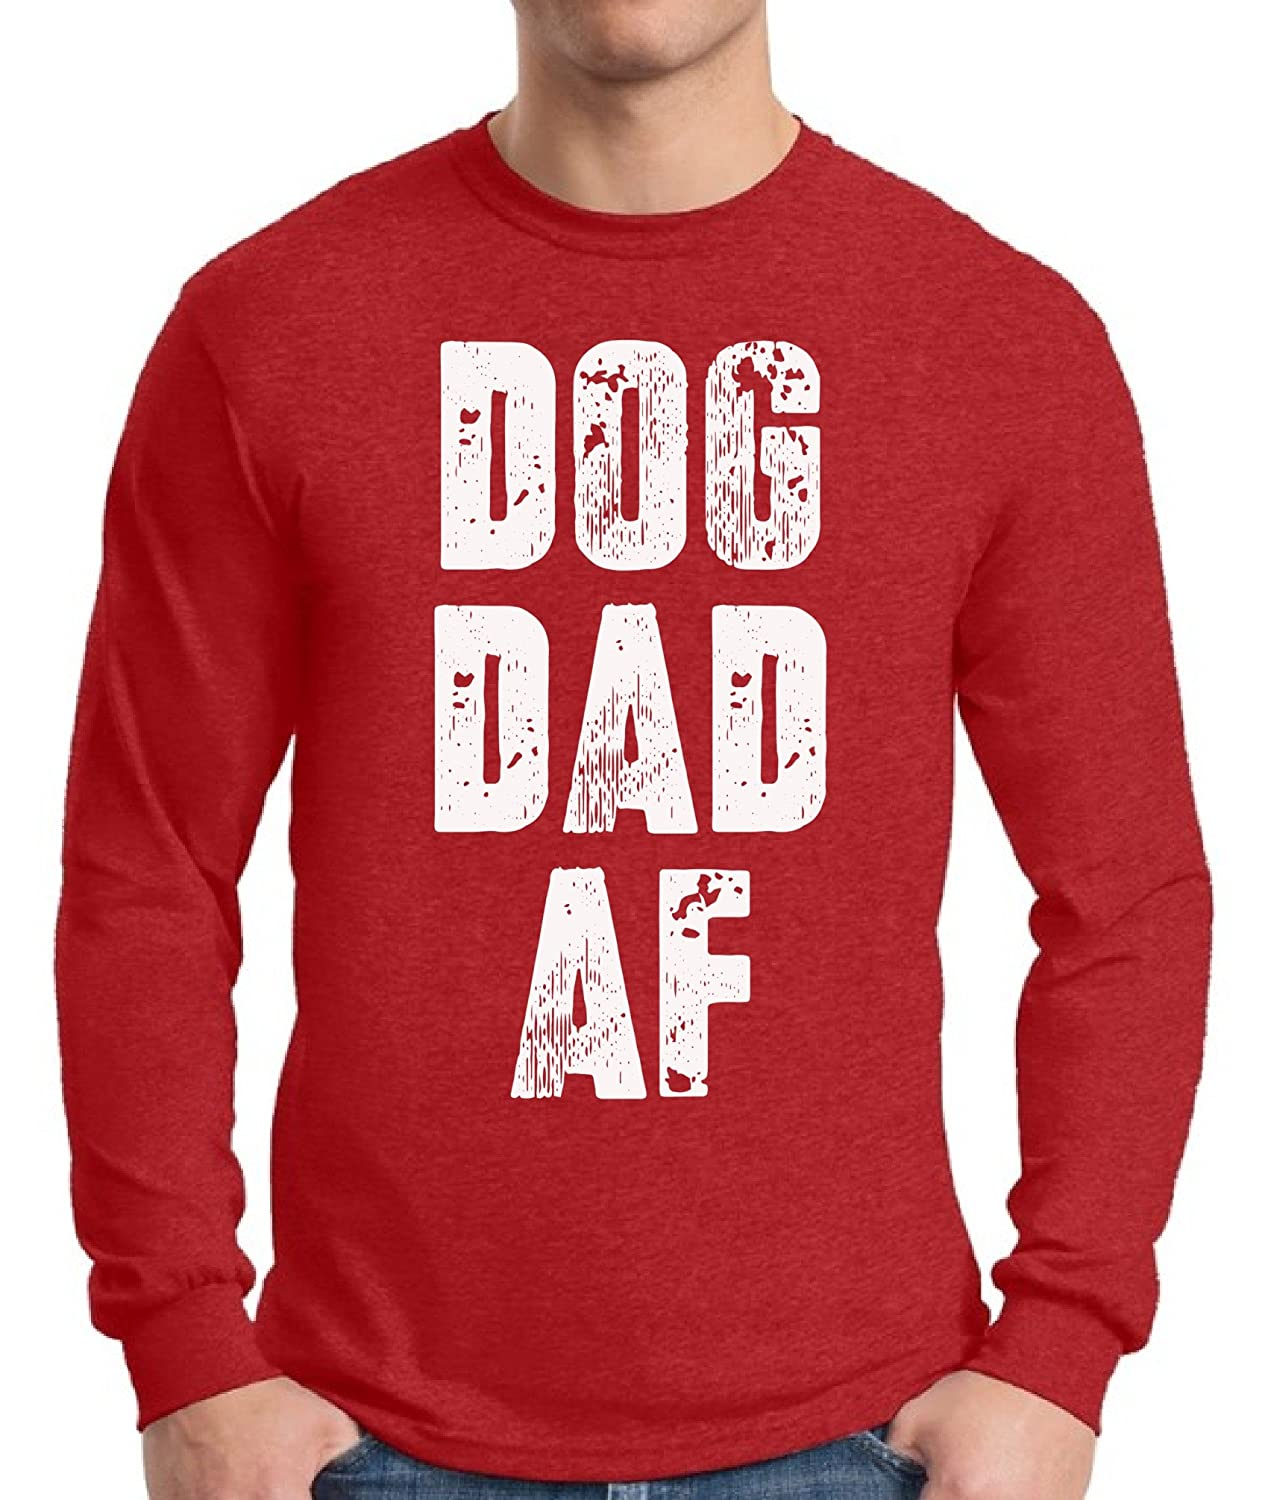 5d5cad2f1 Amazon.com: Pekatees Dog Dad AF Long Sleeve Shirt Dad Gifts for Dog Lovers Dog  Shirt for Dad: Clothing